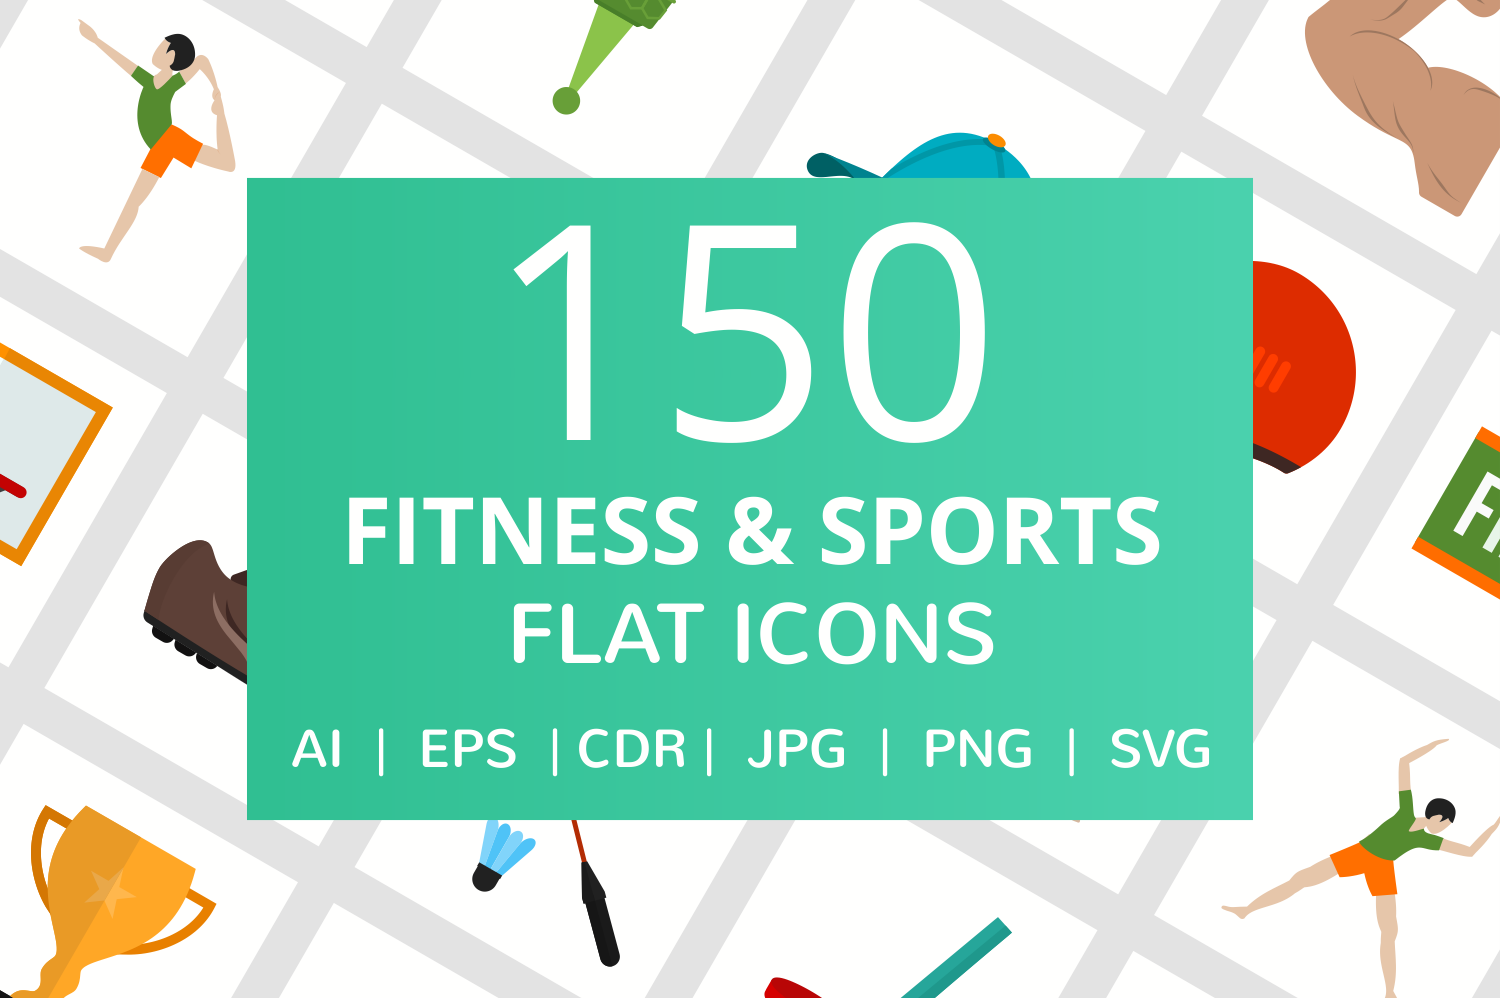 150 Fitness & Sports Flat Icons example image 1